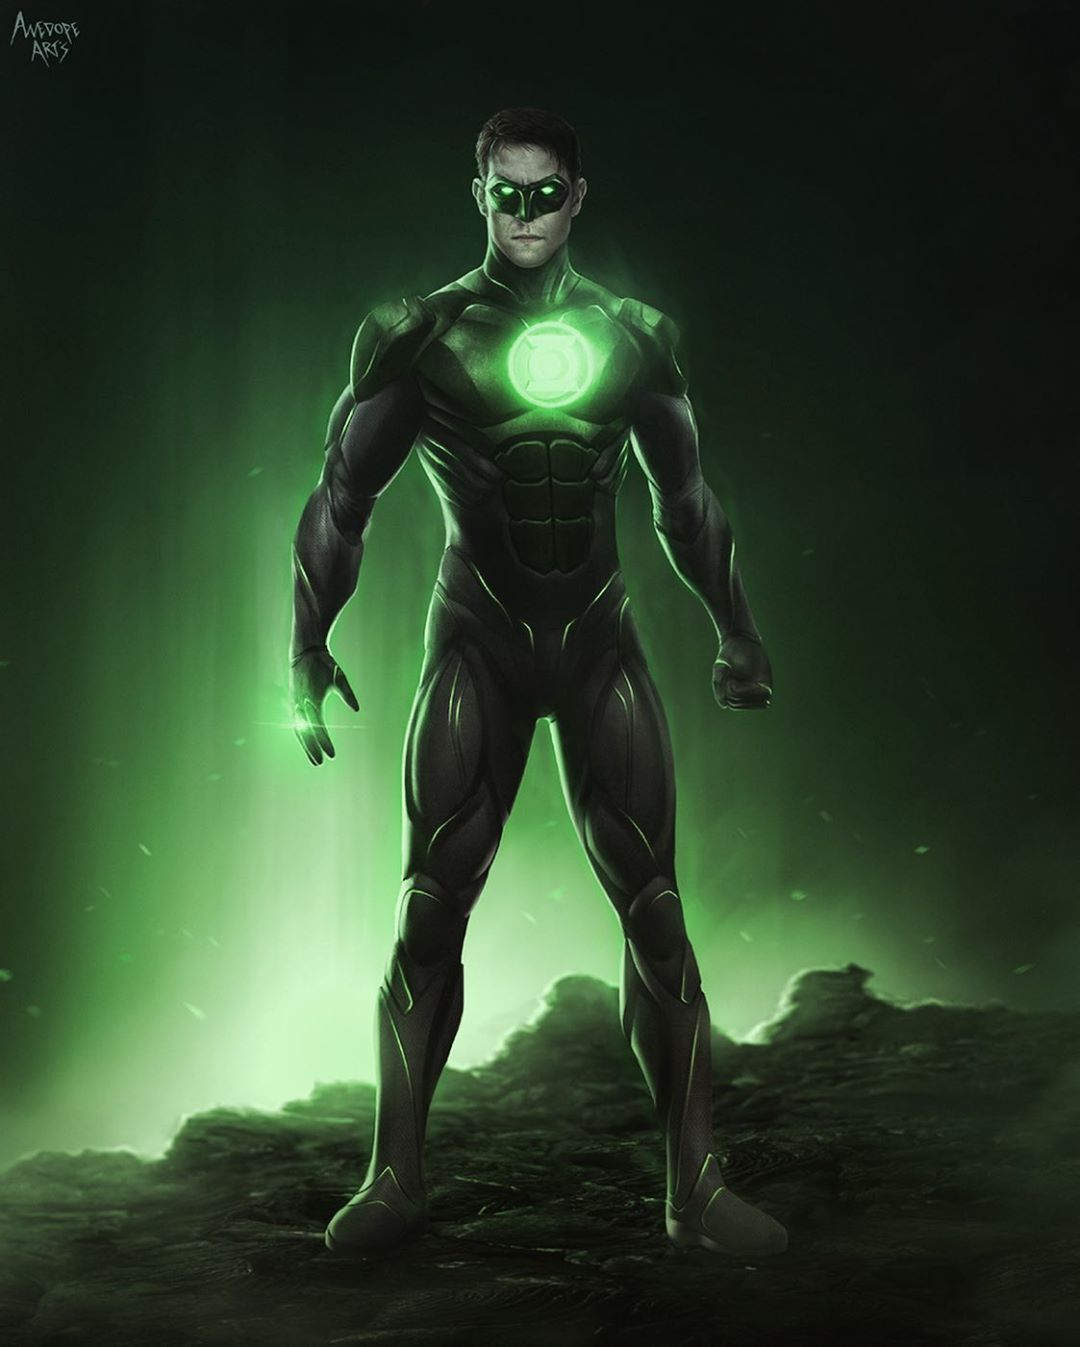 Awedopearts Rey On Instagram Concept Suit Sambenjaminnow As Green Lantern In Zs Justice League This Is Green Lantern Hal Jordan Green Lantern Lanterns